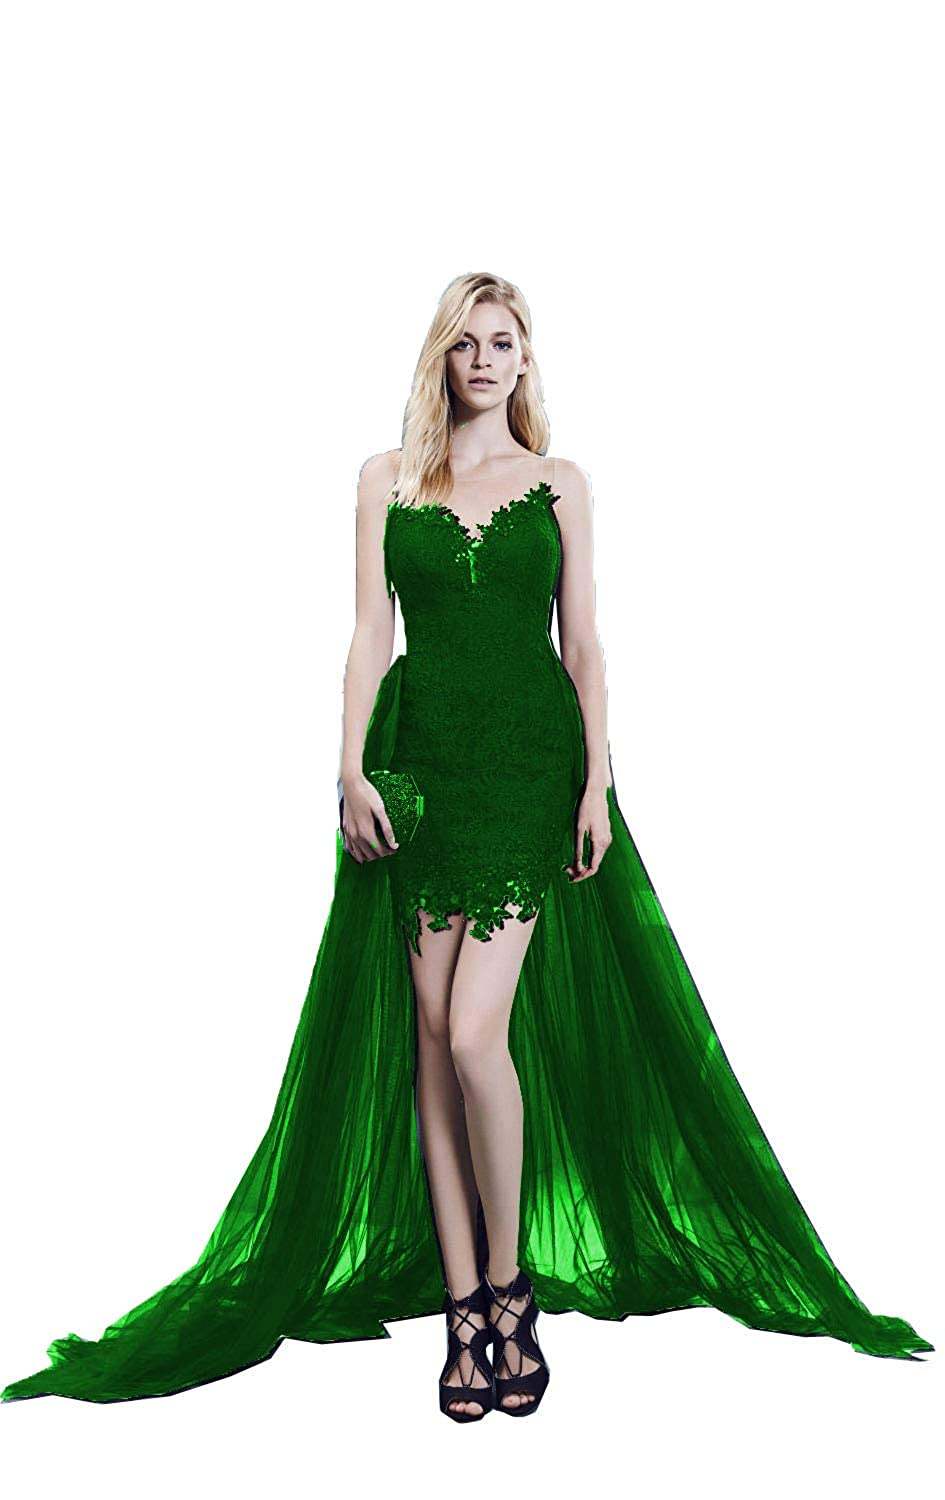 Dark Green MariRobe Women's lace Applique Prom Dress with Detachable Train 2019 Sexy Cocktail Gowns Illusion Backlesss Evening Dress